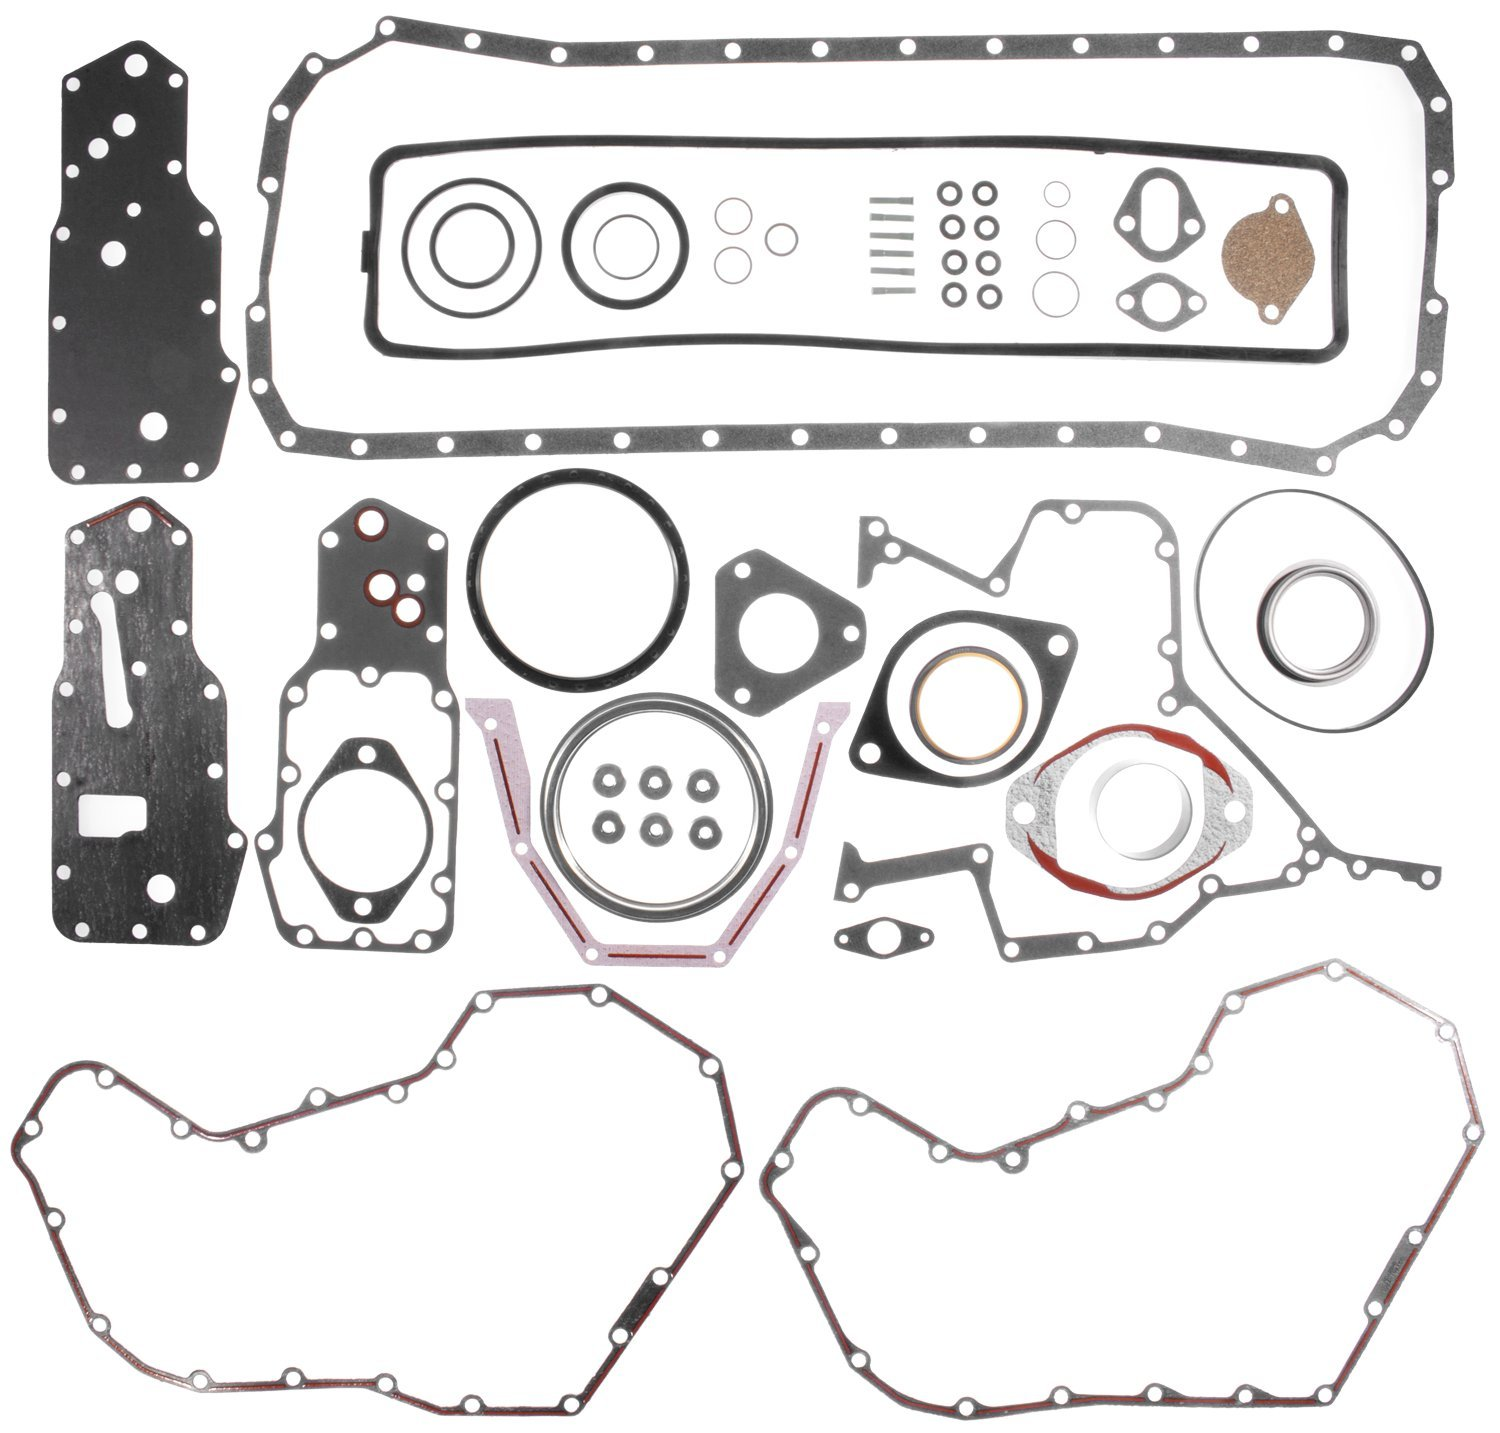 MAHLE Original CS4068 Engine Conversion Gasket Set by MAHLE Original